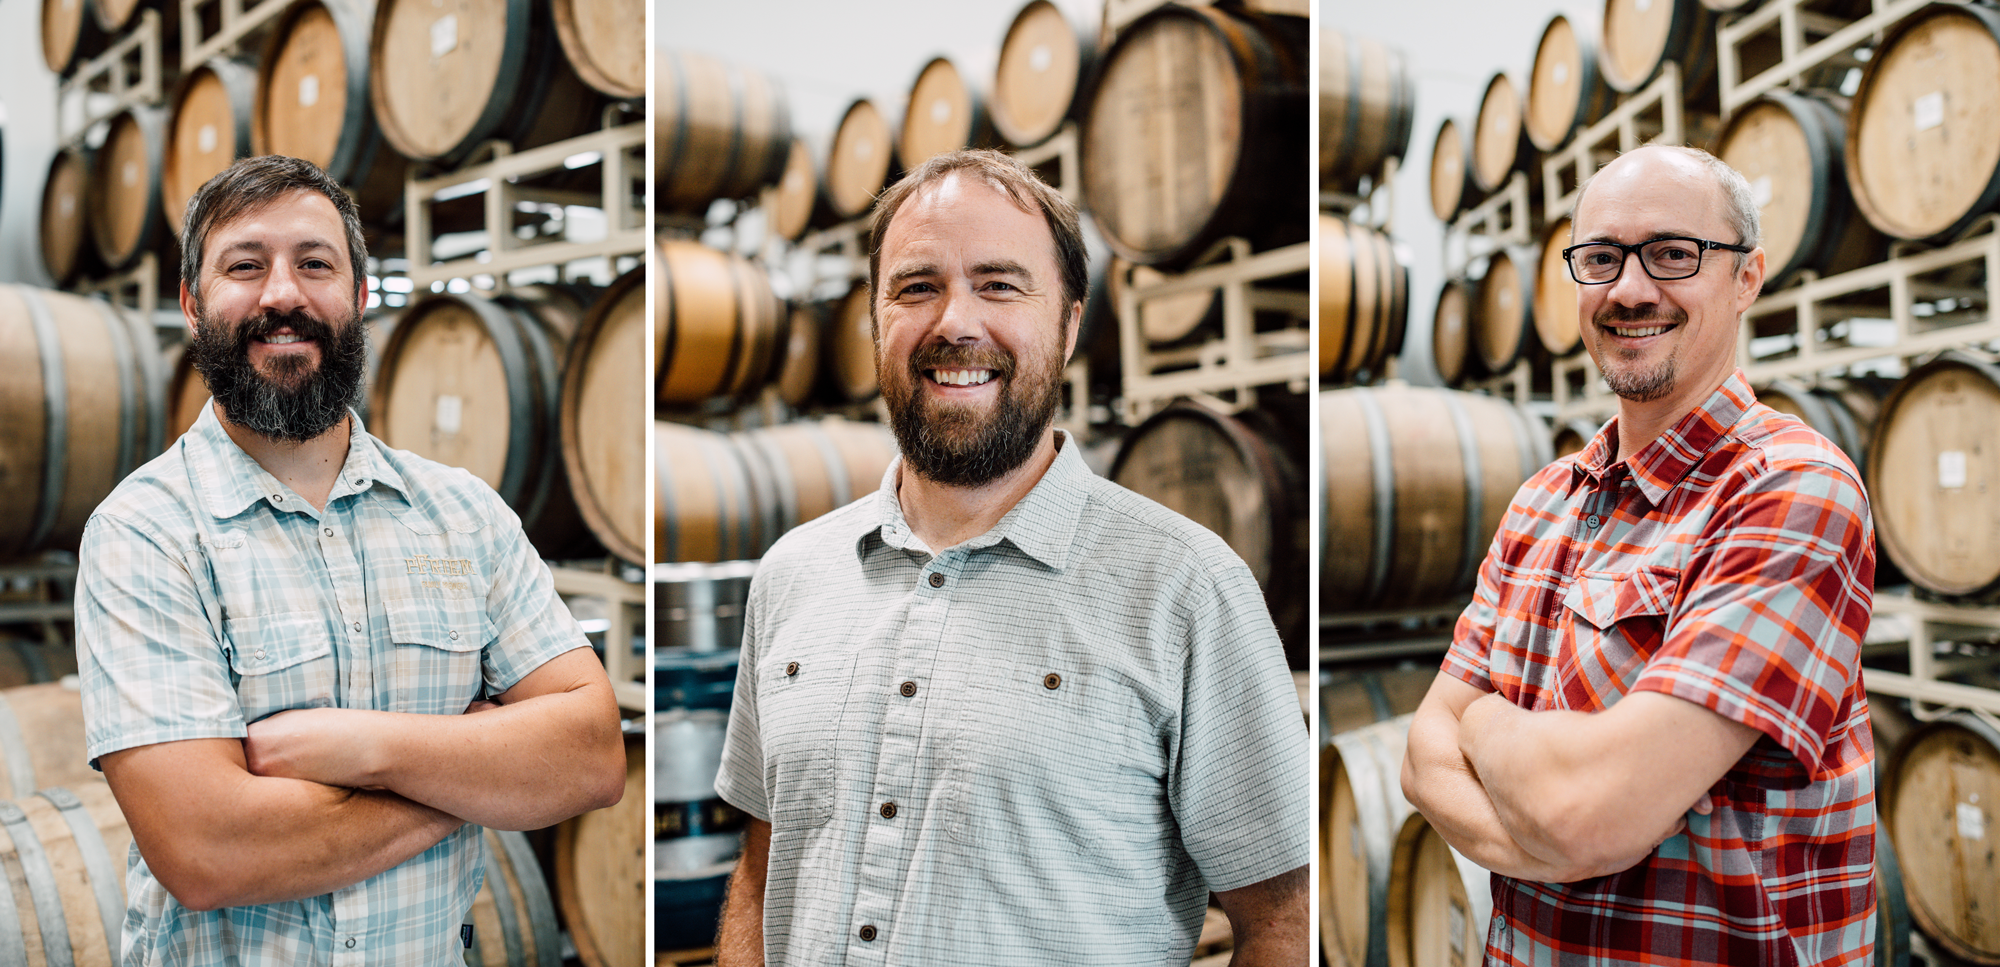 pFriem Co-Founders Josh Pfriem, Ken Whiteman, and Rudy Kellner. (image courtesy of pFriem Family Brewers).